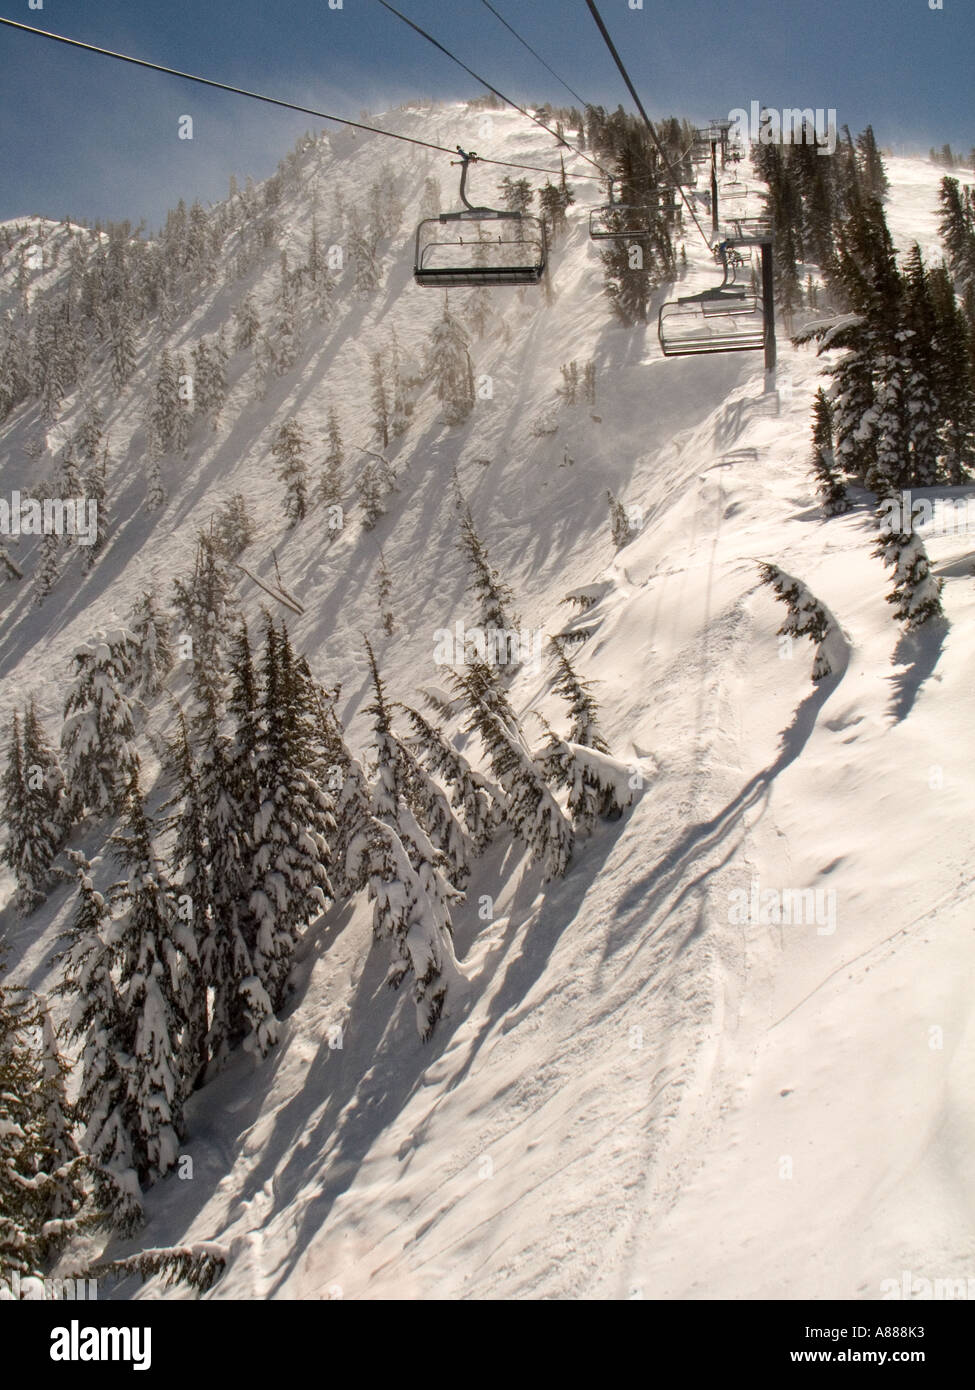 A view of the Chutes at Mt Rose Ski Area from the lift Mt Rose is located in the Sierras near Reno Nevada Stock Photo